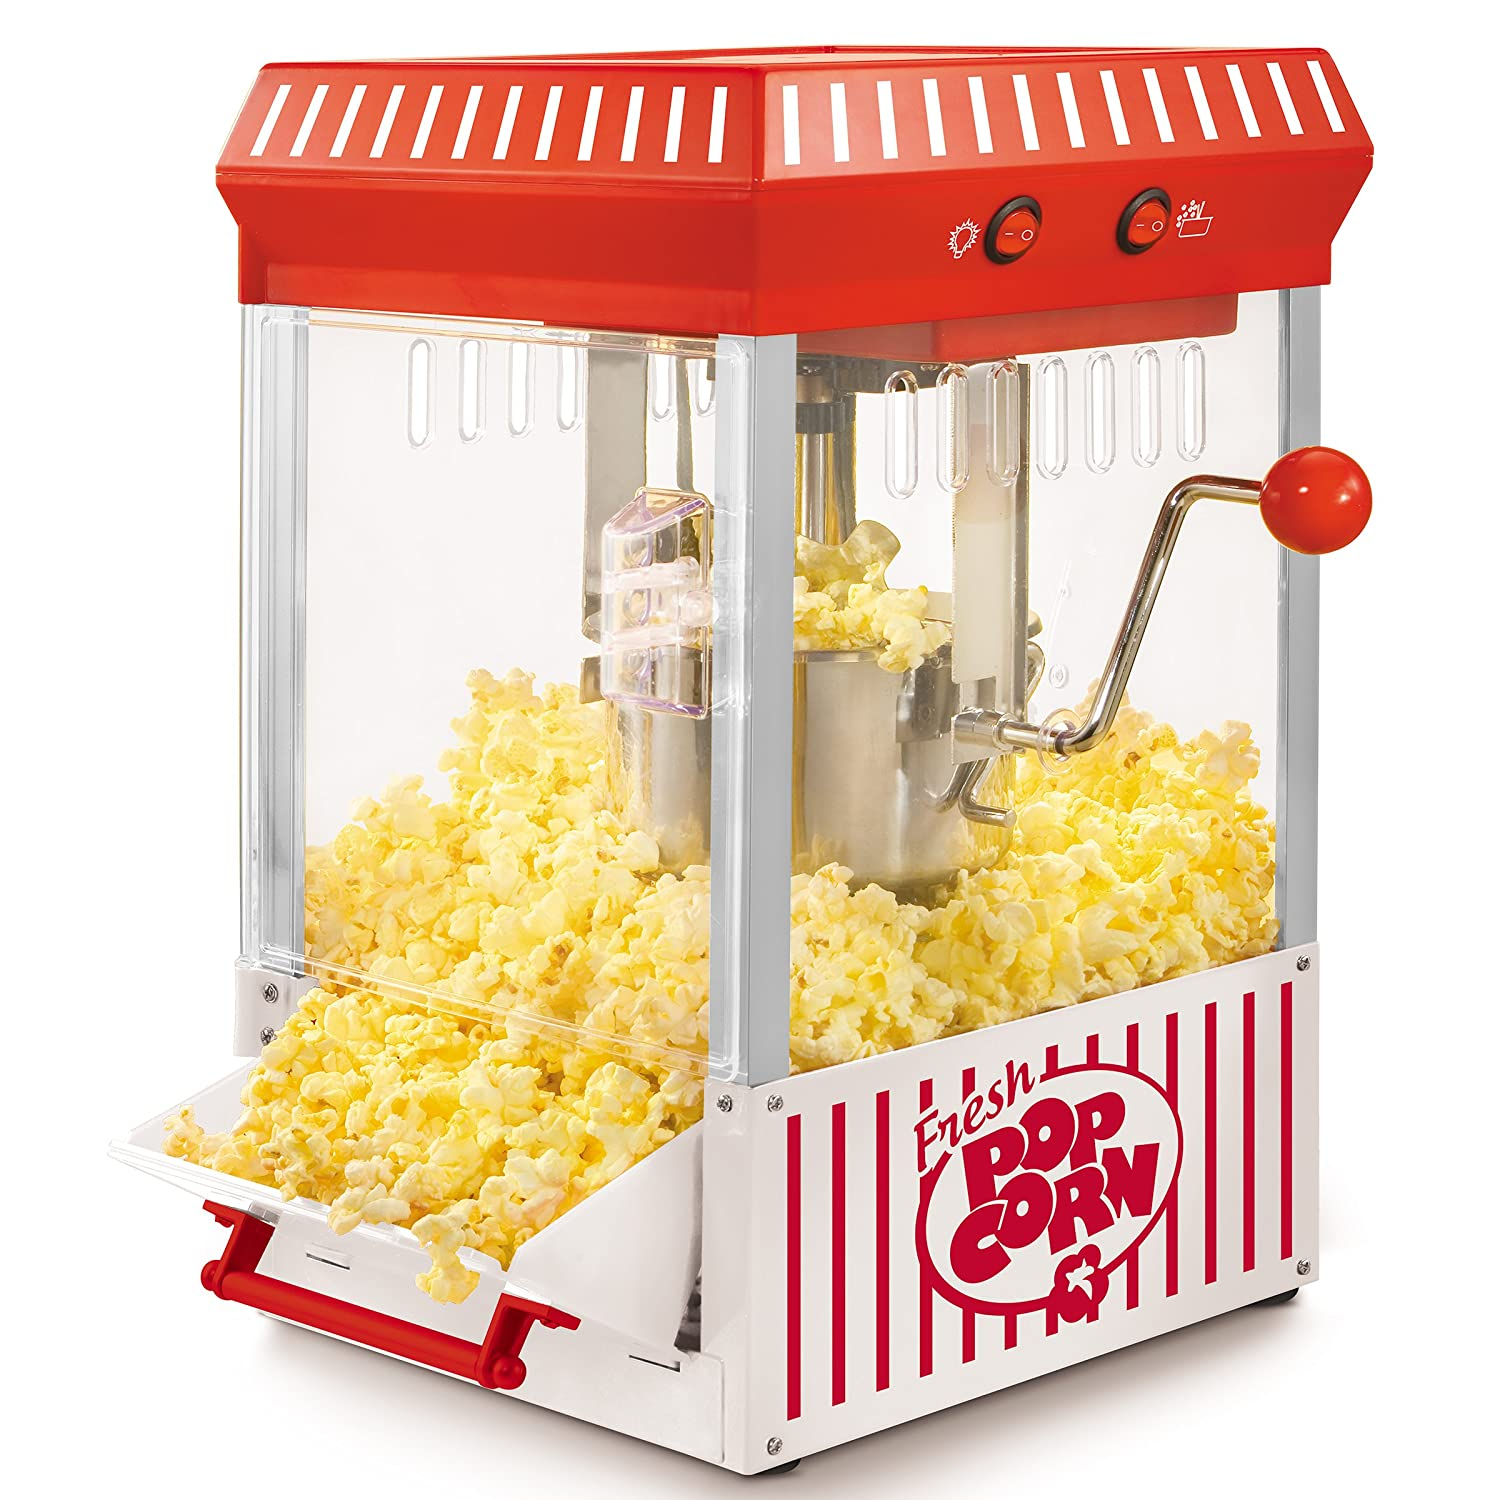 Nostalgia Popcorn Machine Black Friday Deal 2020